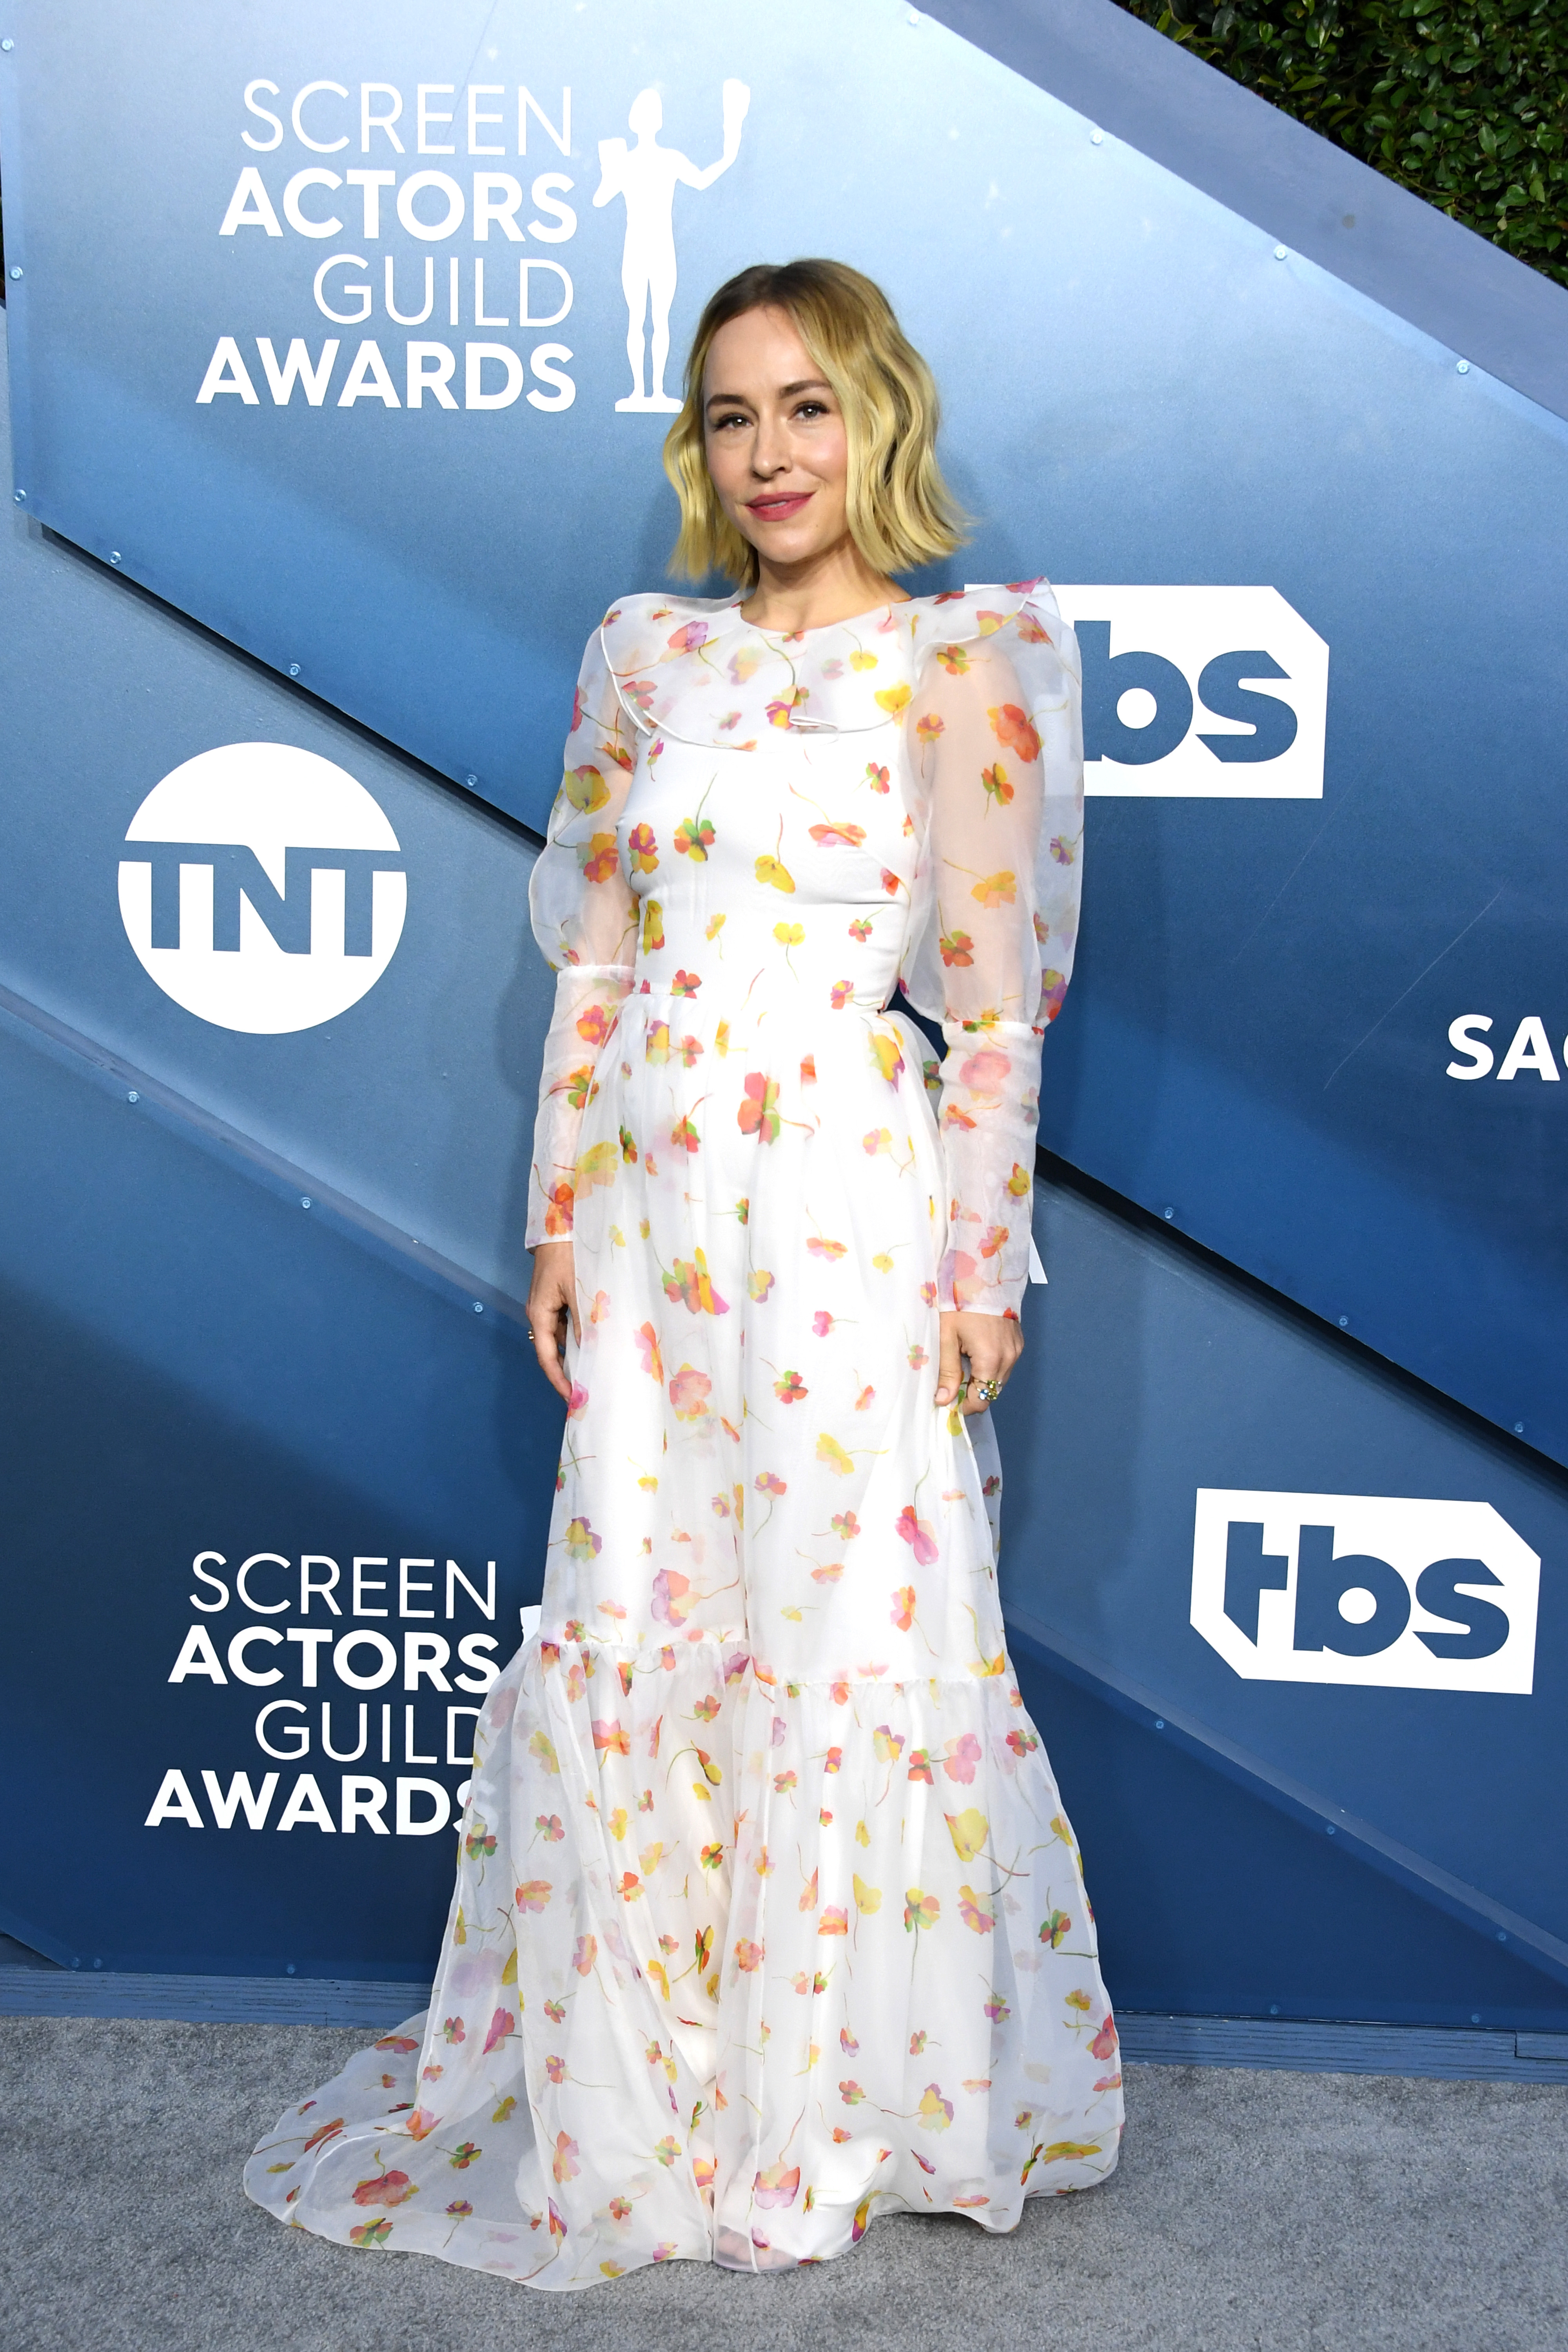 LOS ANGELES, CALIFORNIA - JANUARY 19: Sarah Goldberg attends the 26th Annual Screen ActorsGuild Awards at The Shrine Auditorium on January 19, 2020 in Los Angeles, California. (Photo by Jon Kopaloff/Getty Images)